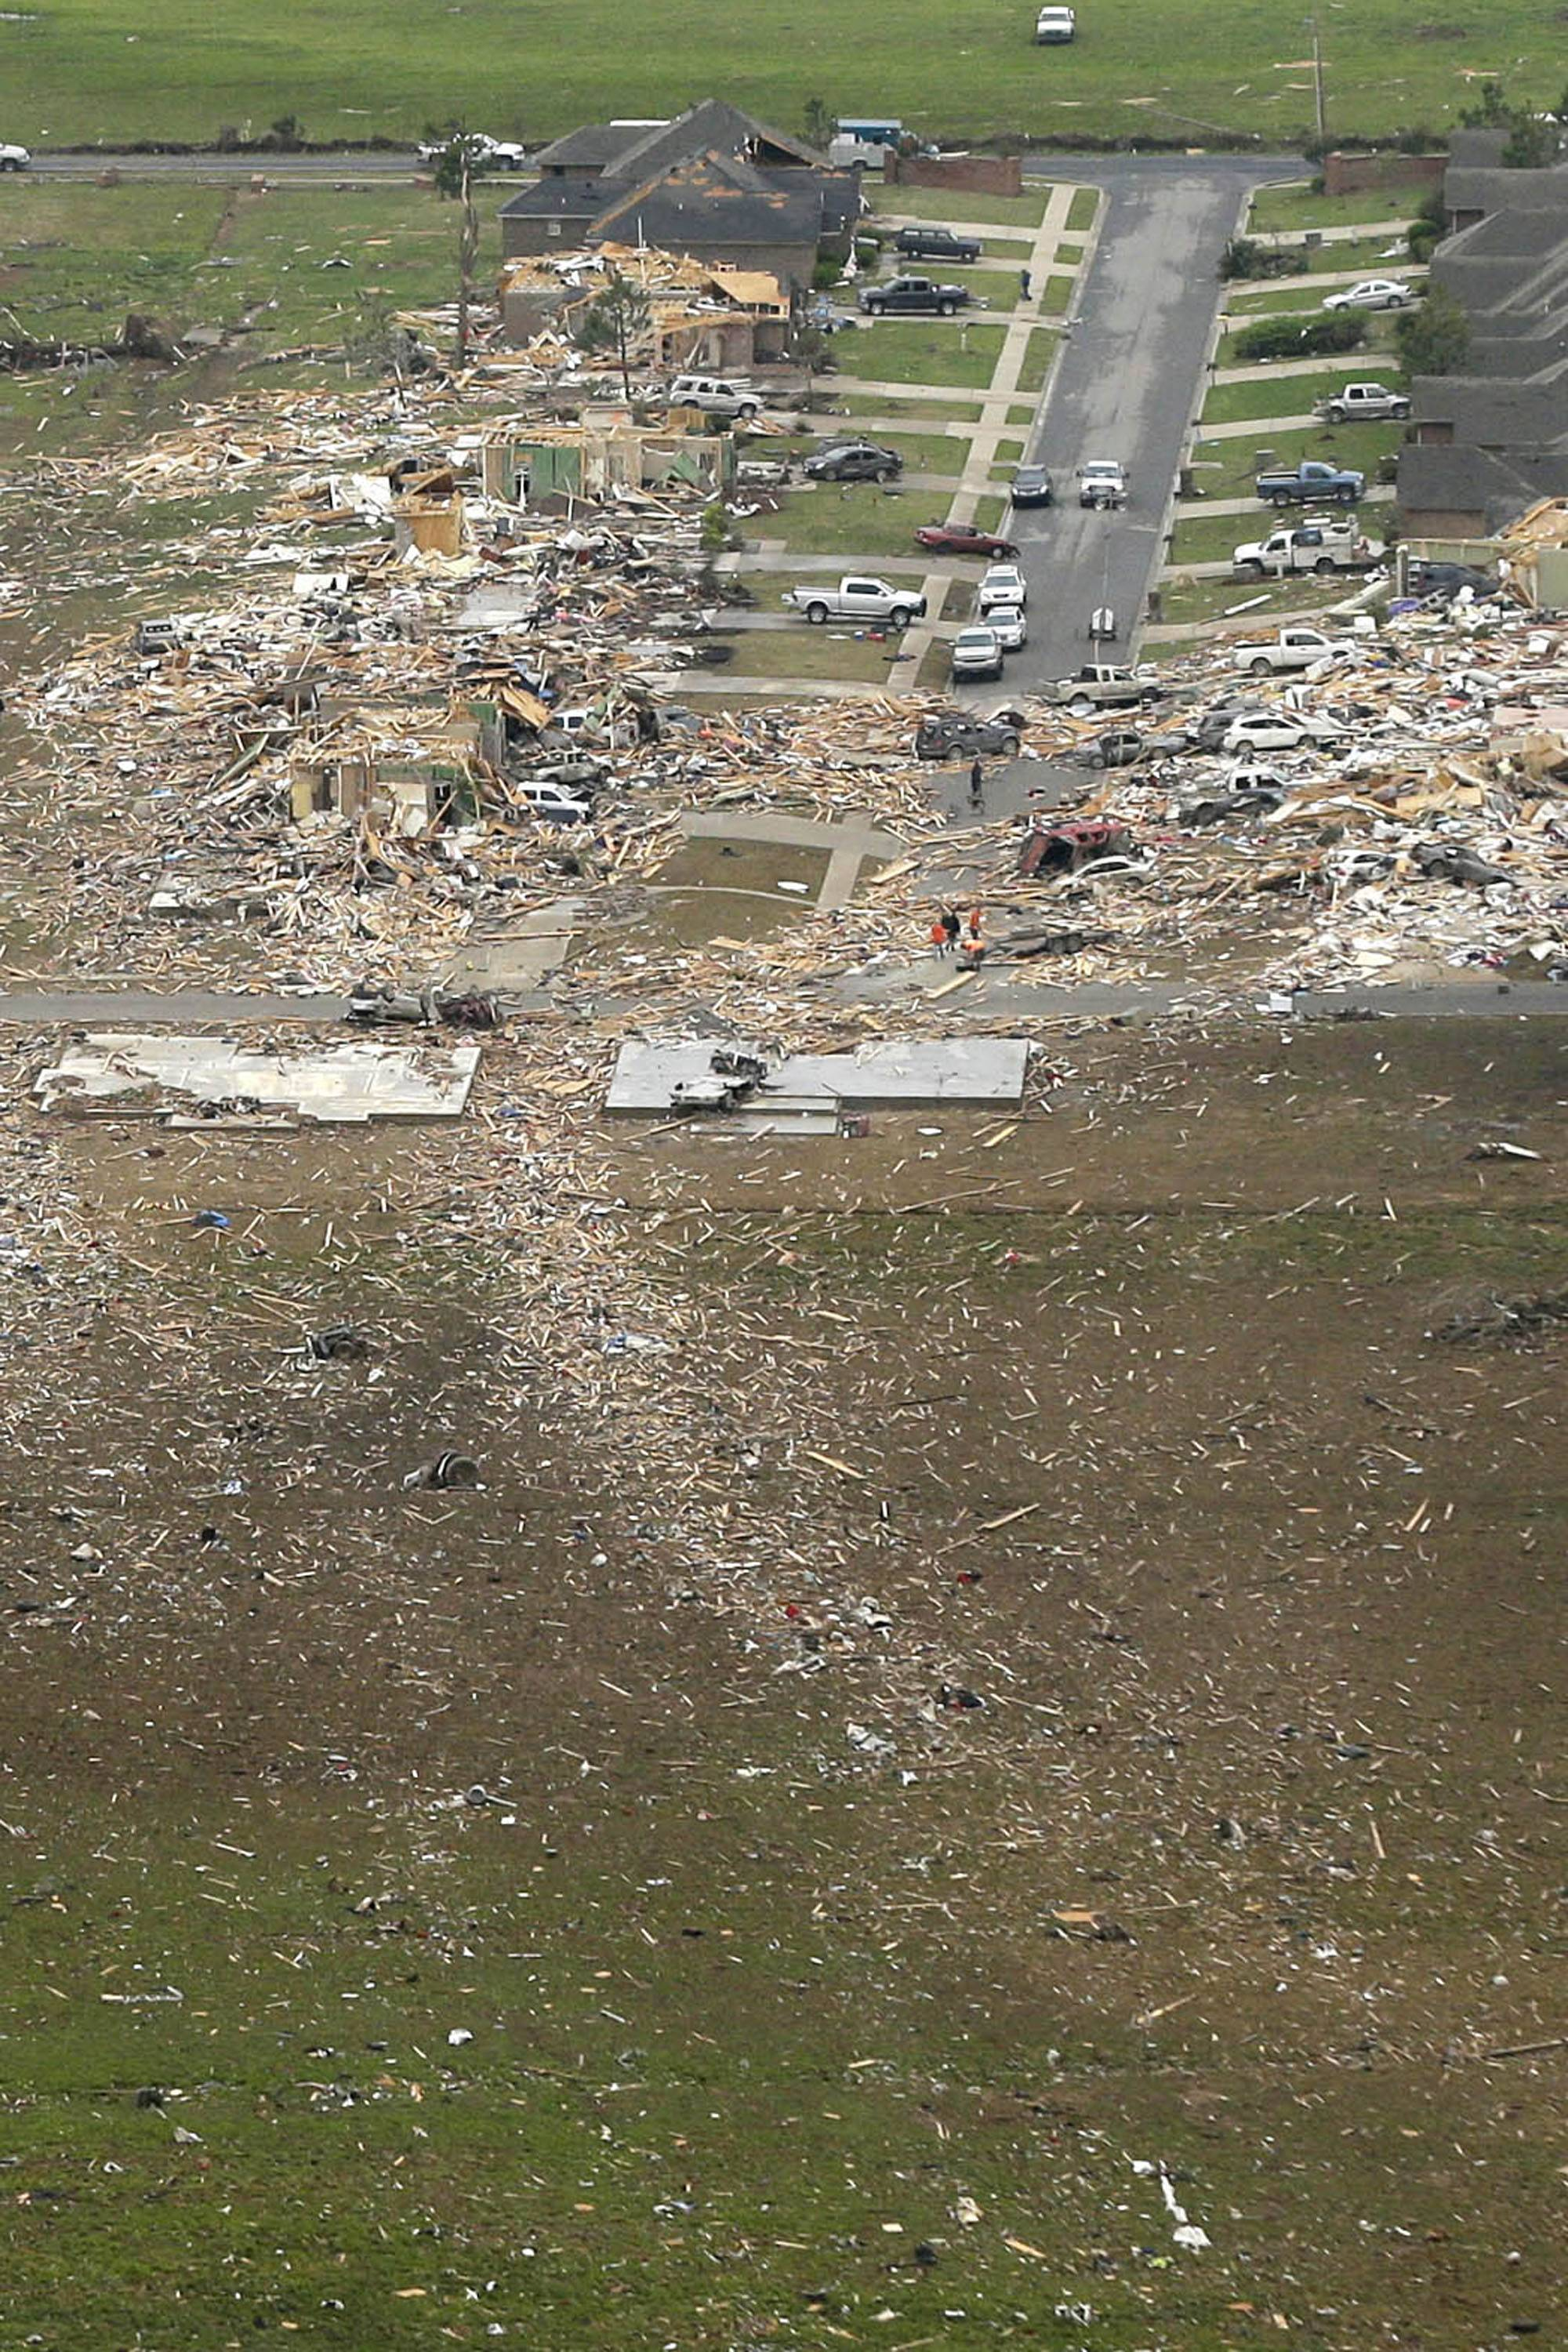 A trail of debris leads along the path of a tornado-devastated neighborhood in Vilonia, Ark., Monday, April 28, 2014, after a tornado struck the town late Sunday.